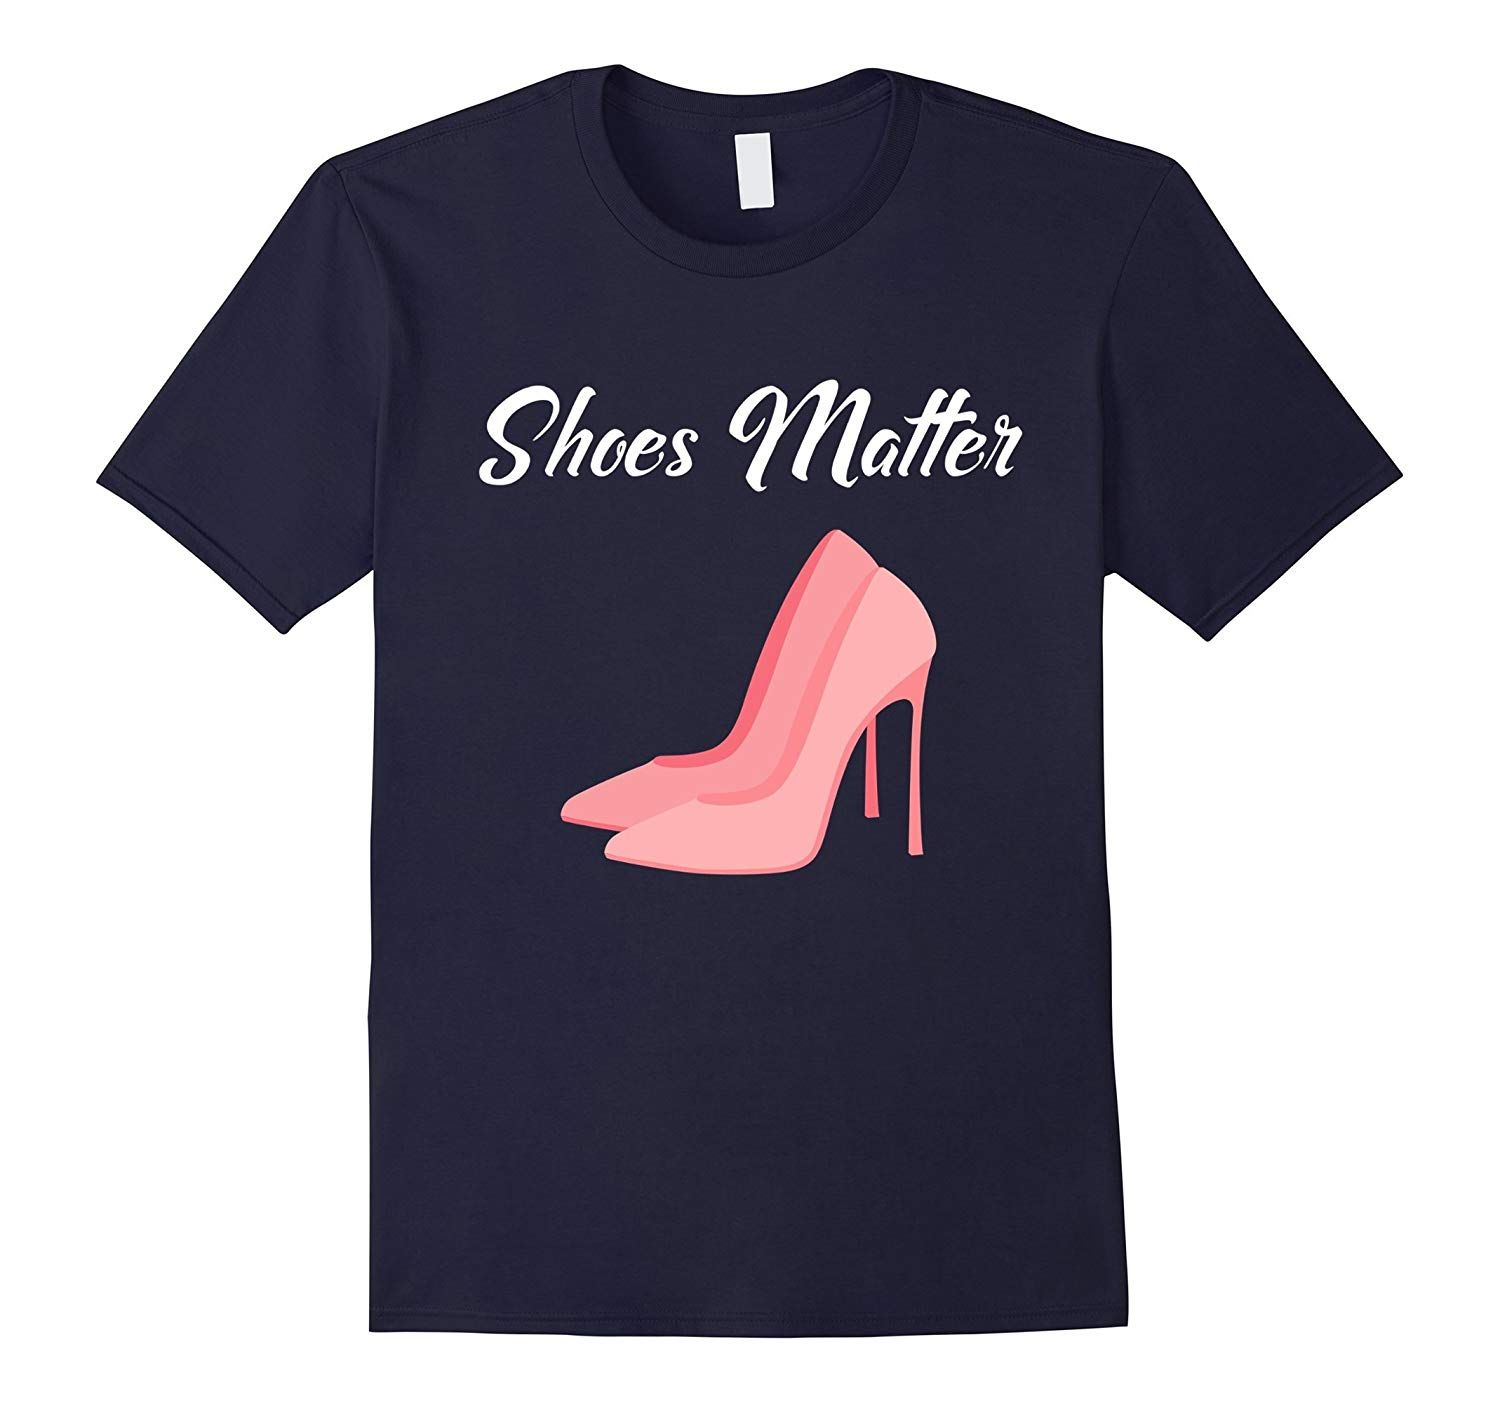 Shoe Addict Gifts T-Shirt — Shoes Matter – Products